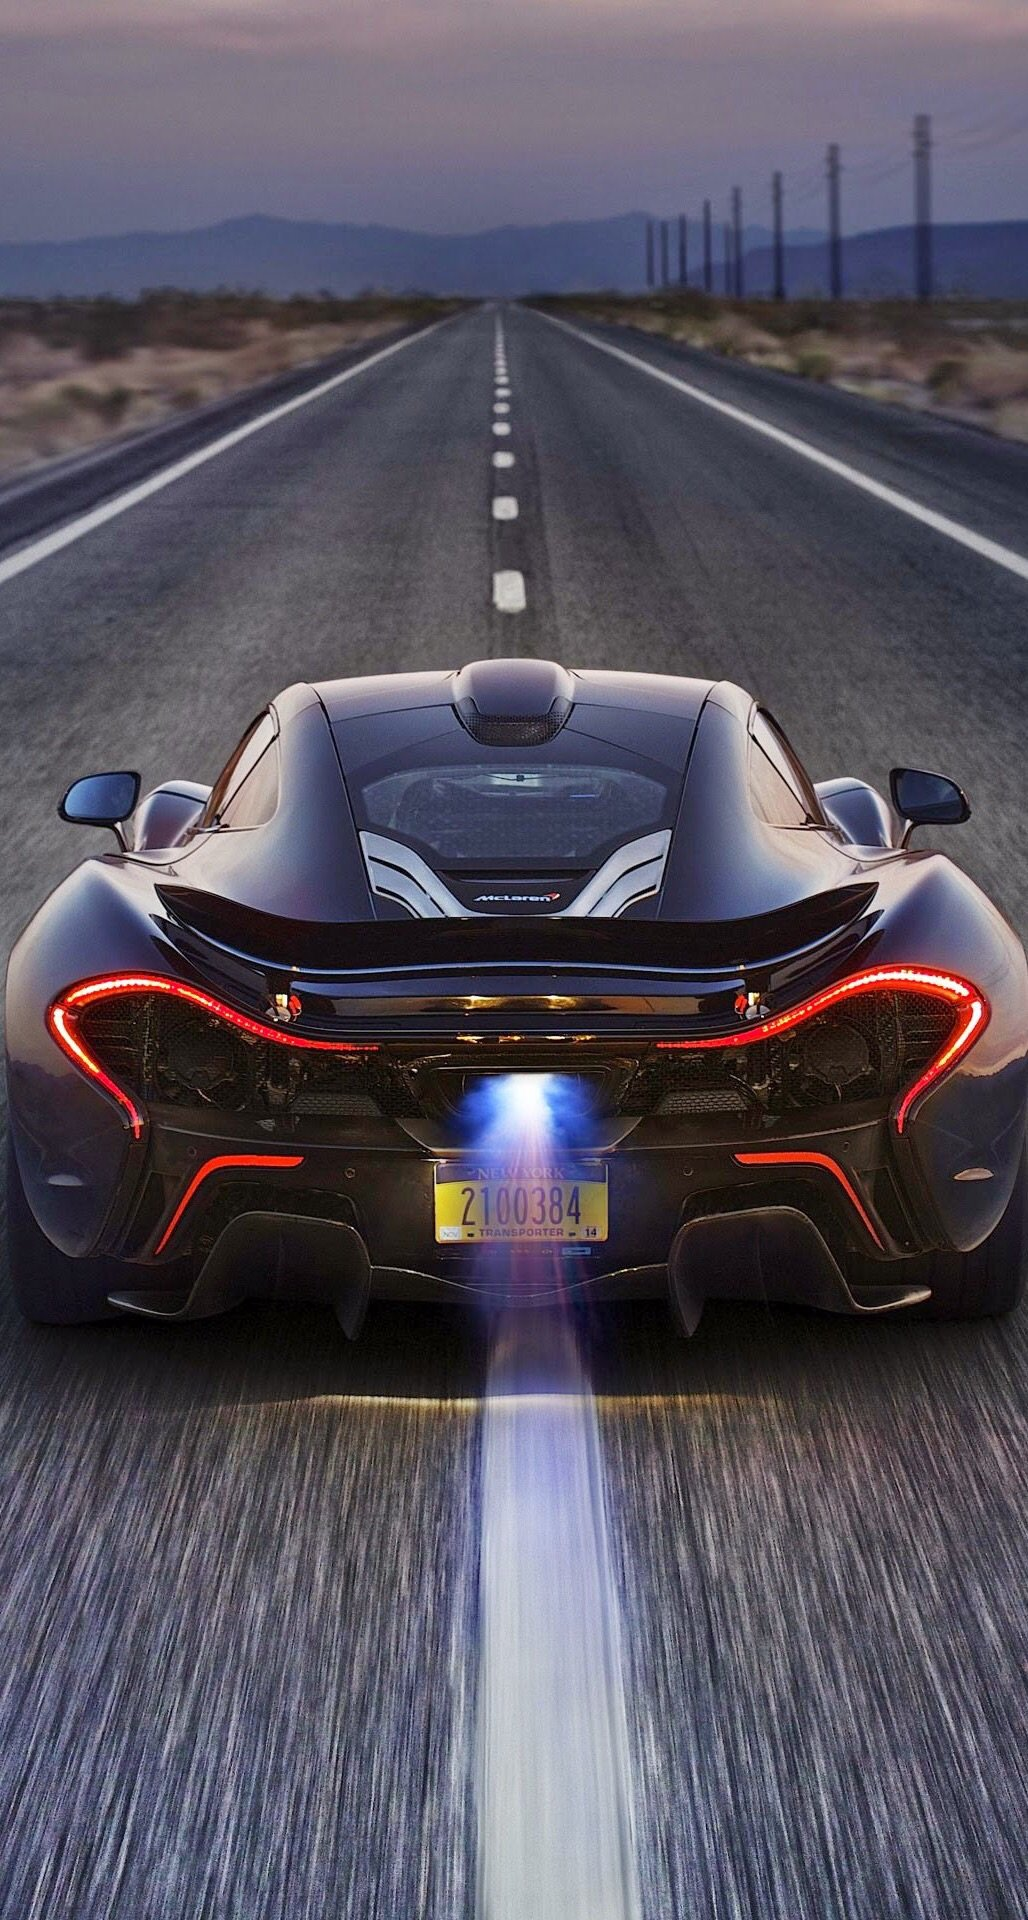 Wallpaper Wednesday 5 Cool Car Wallpapers for your iPhone 1028x1920